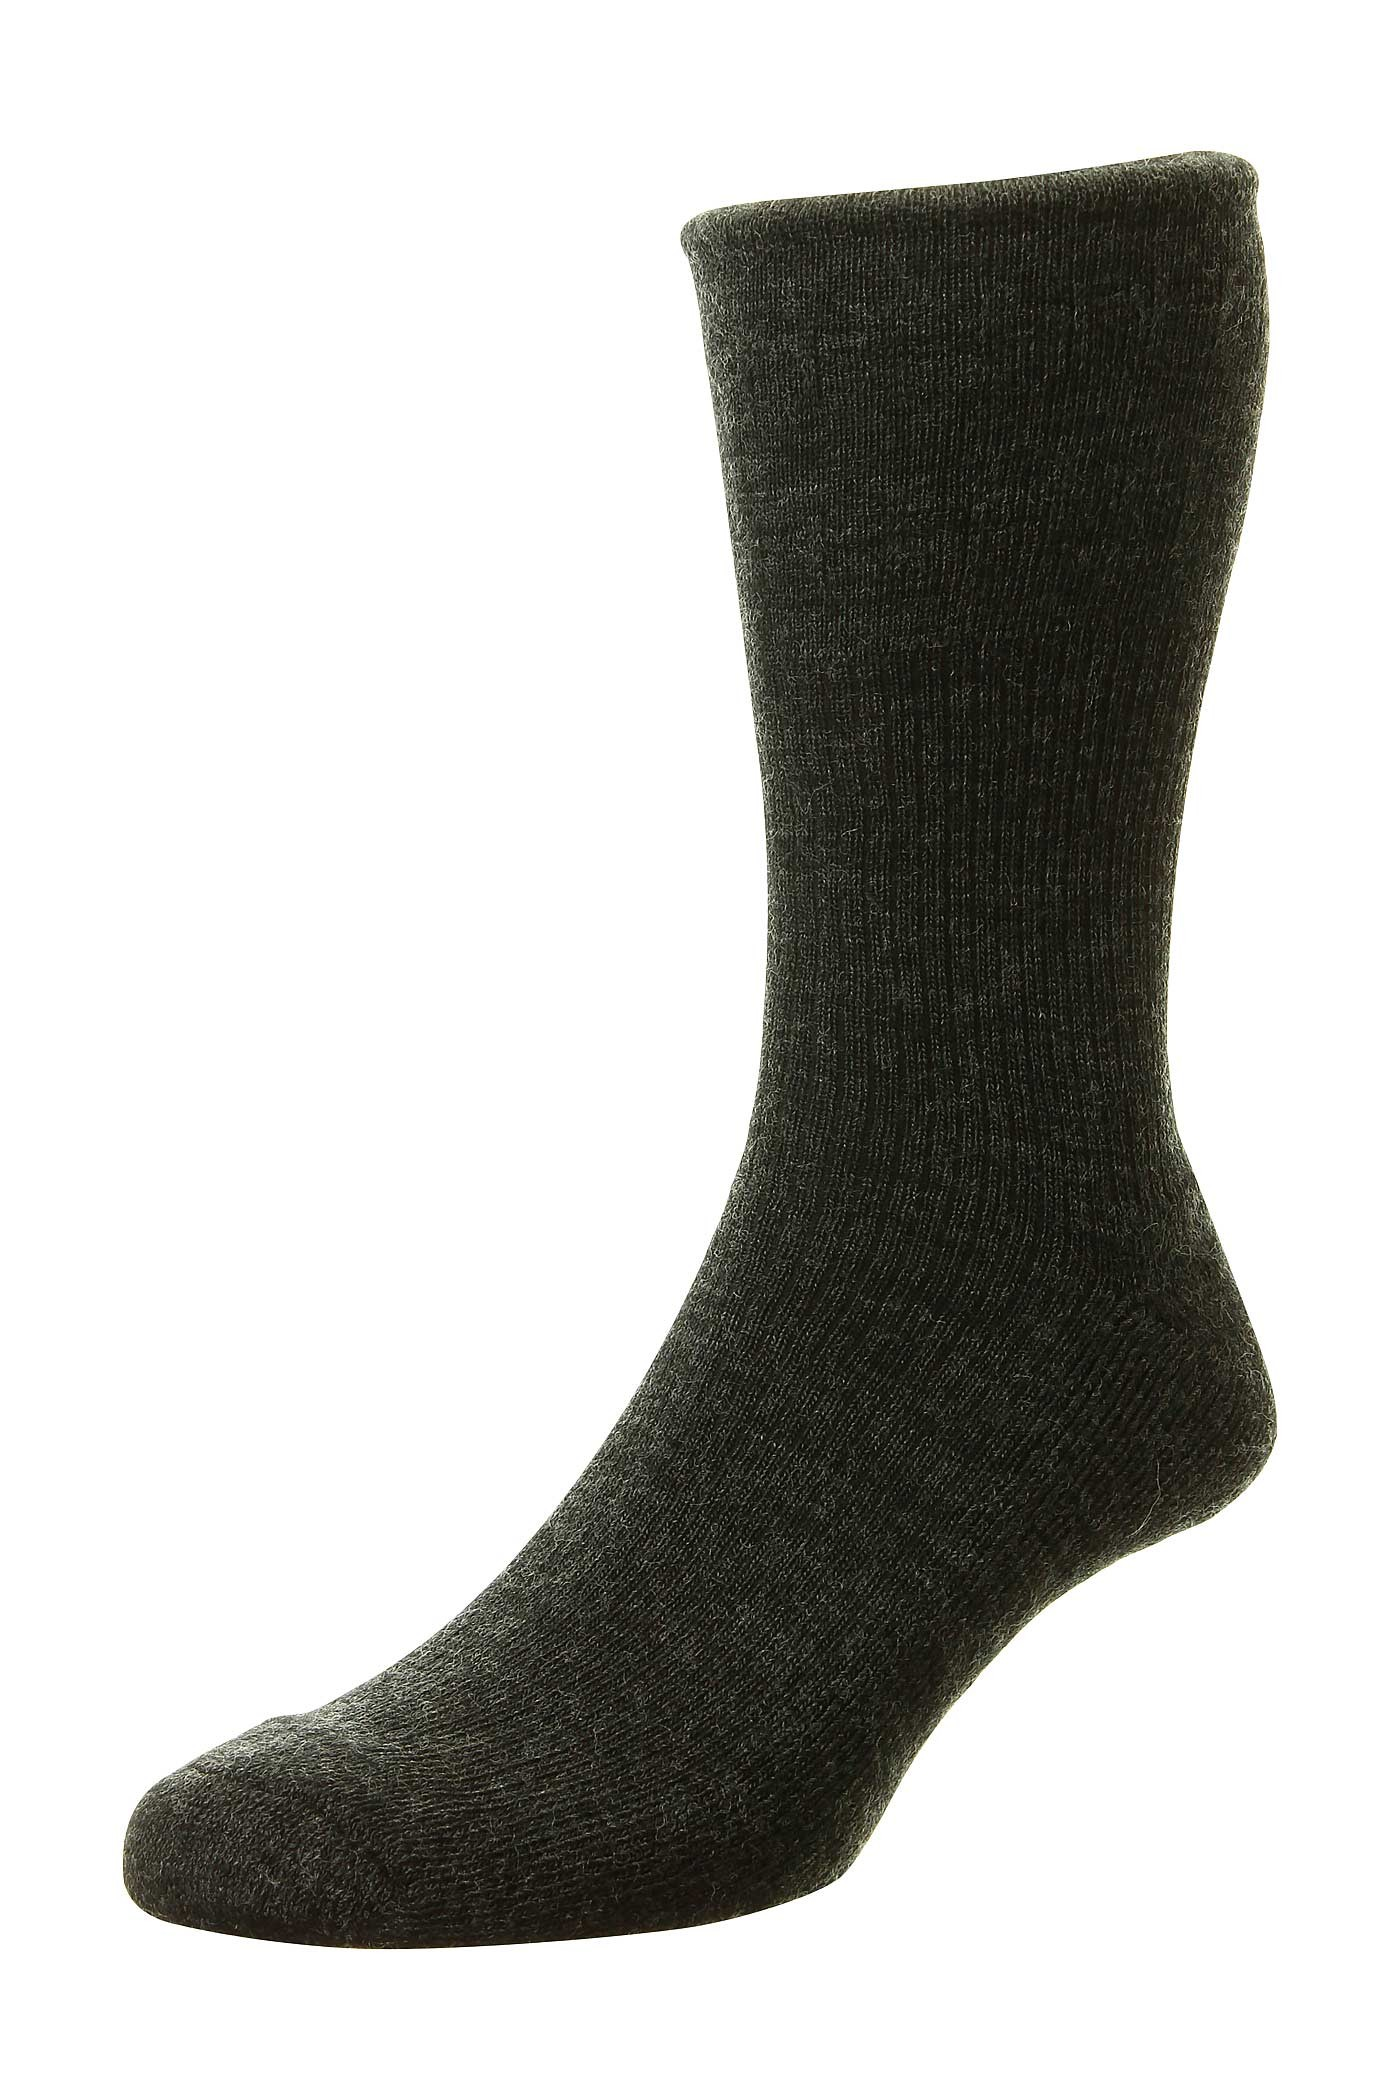 Outdoor Living Footwear Socks Cushion Sole Men S